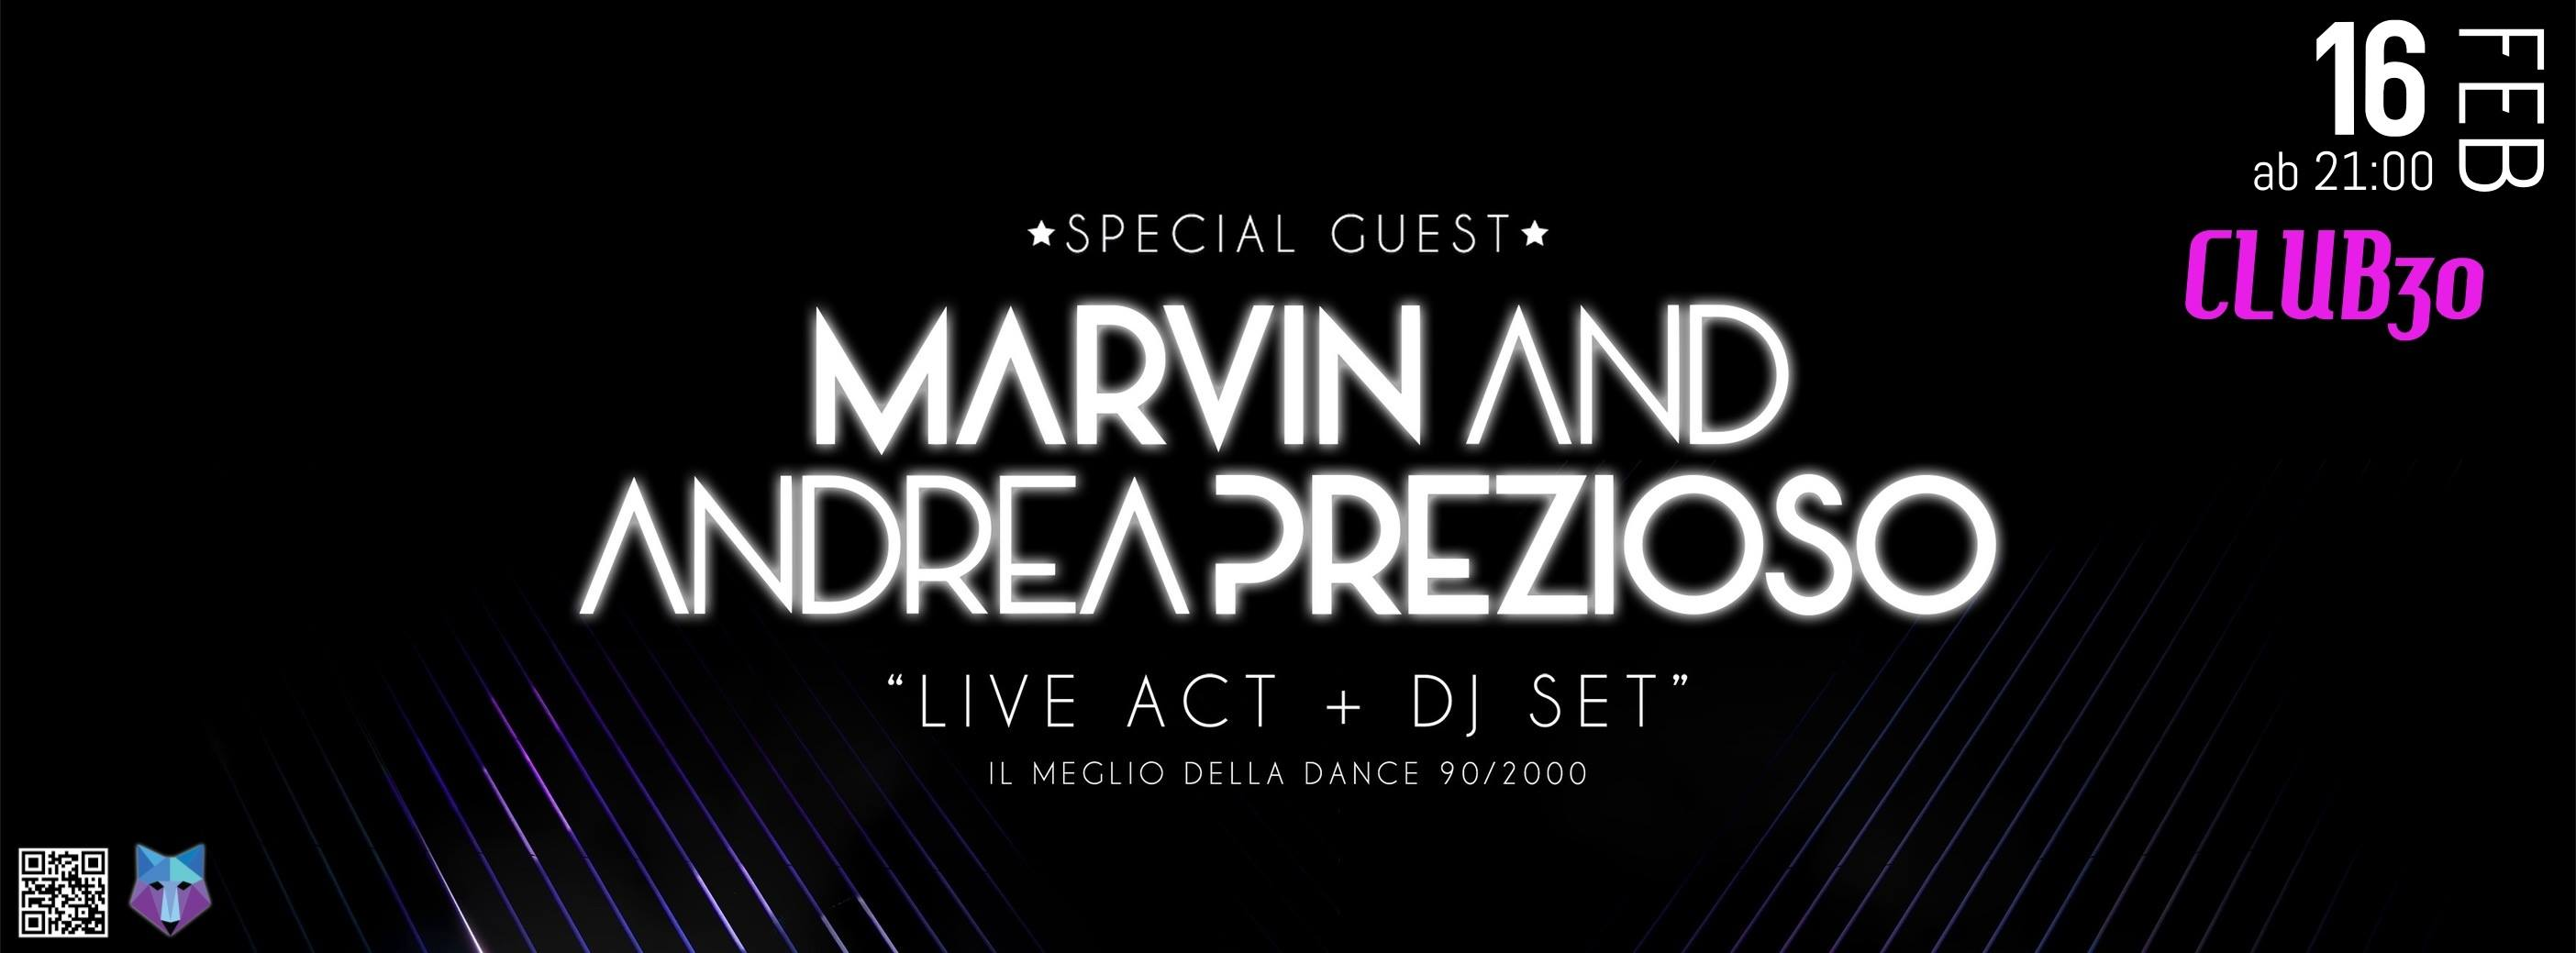 CLUB 30 | Prezioso feat. Marvin